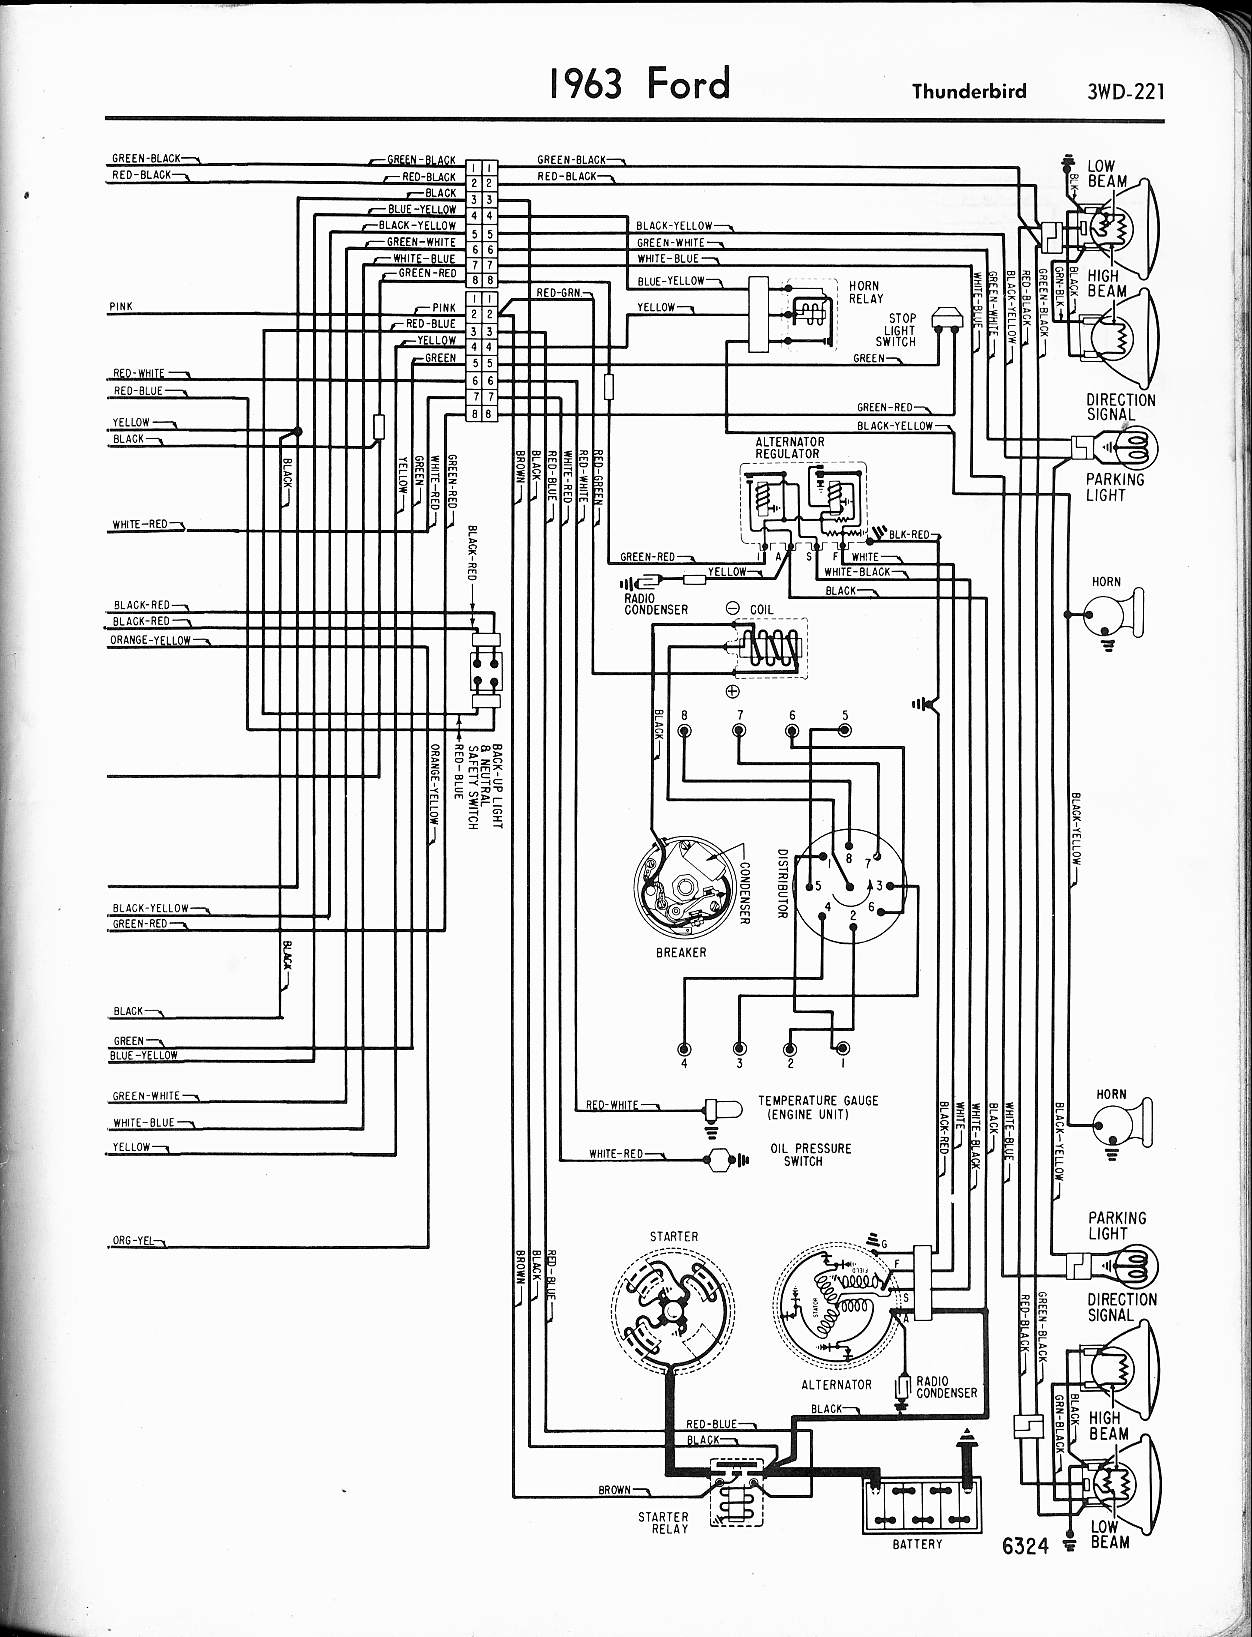 77 ford fairmont wiring diagram 1960 ford wiring diagram ford wiring diagram for 150cc gy6 [ 1252 x 1637 Pixel ]